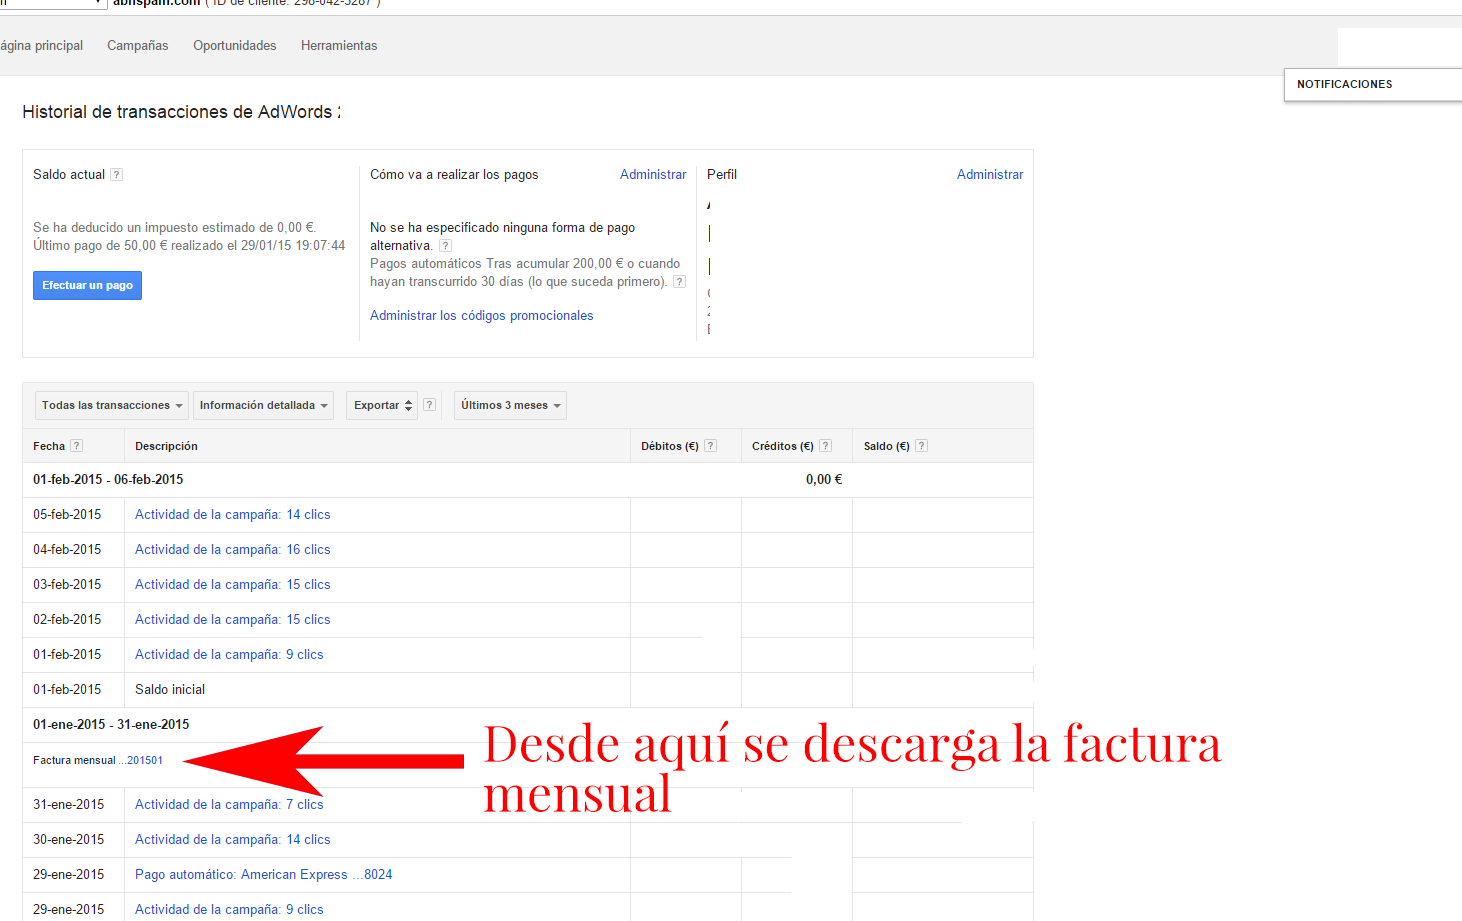 facturacion_adwords2